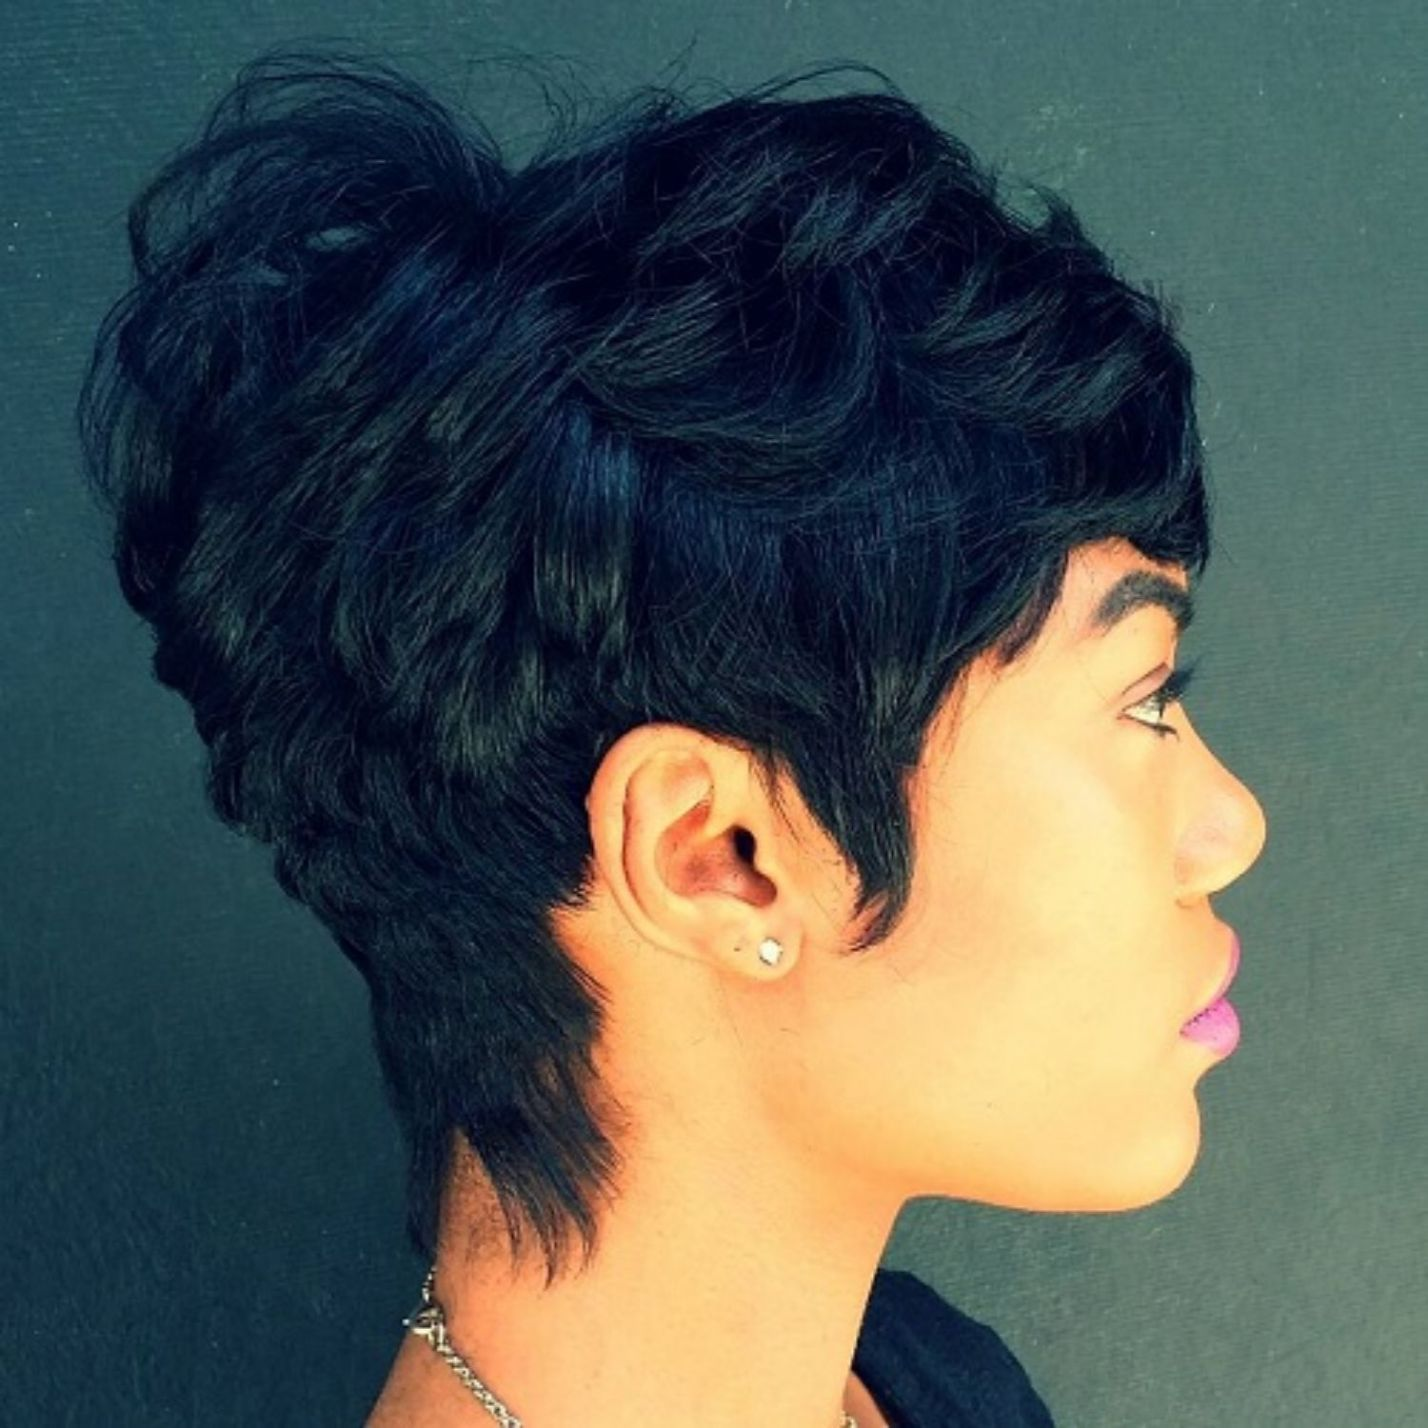 60 Great Short Hairstyles For Black Women Hairstyles Pinterest